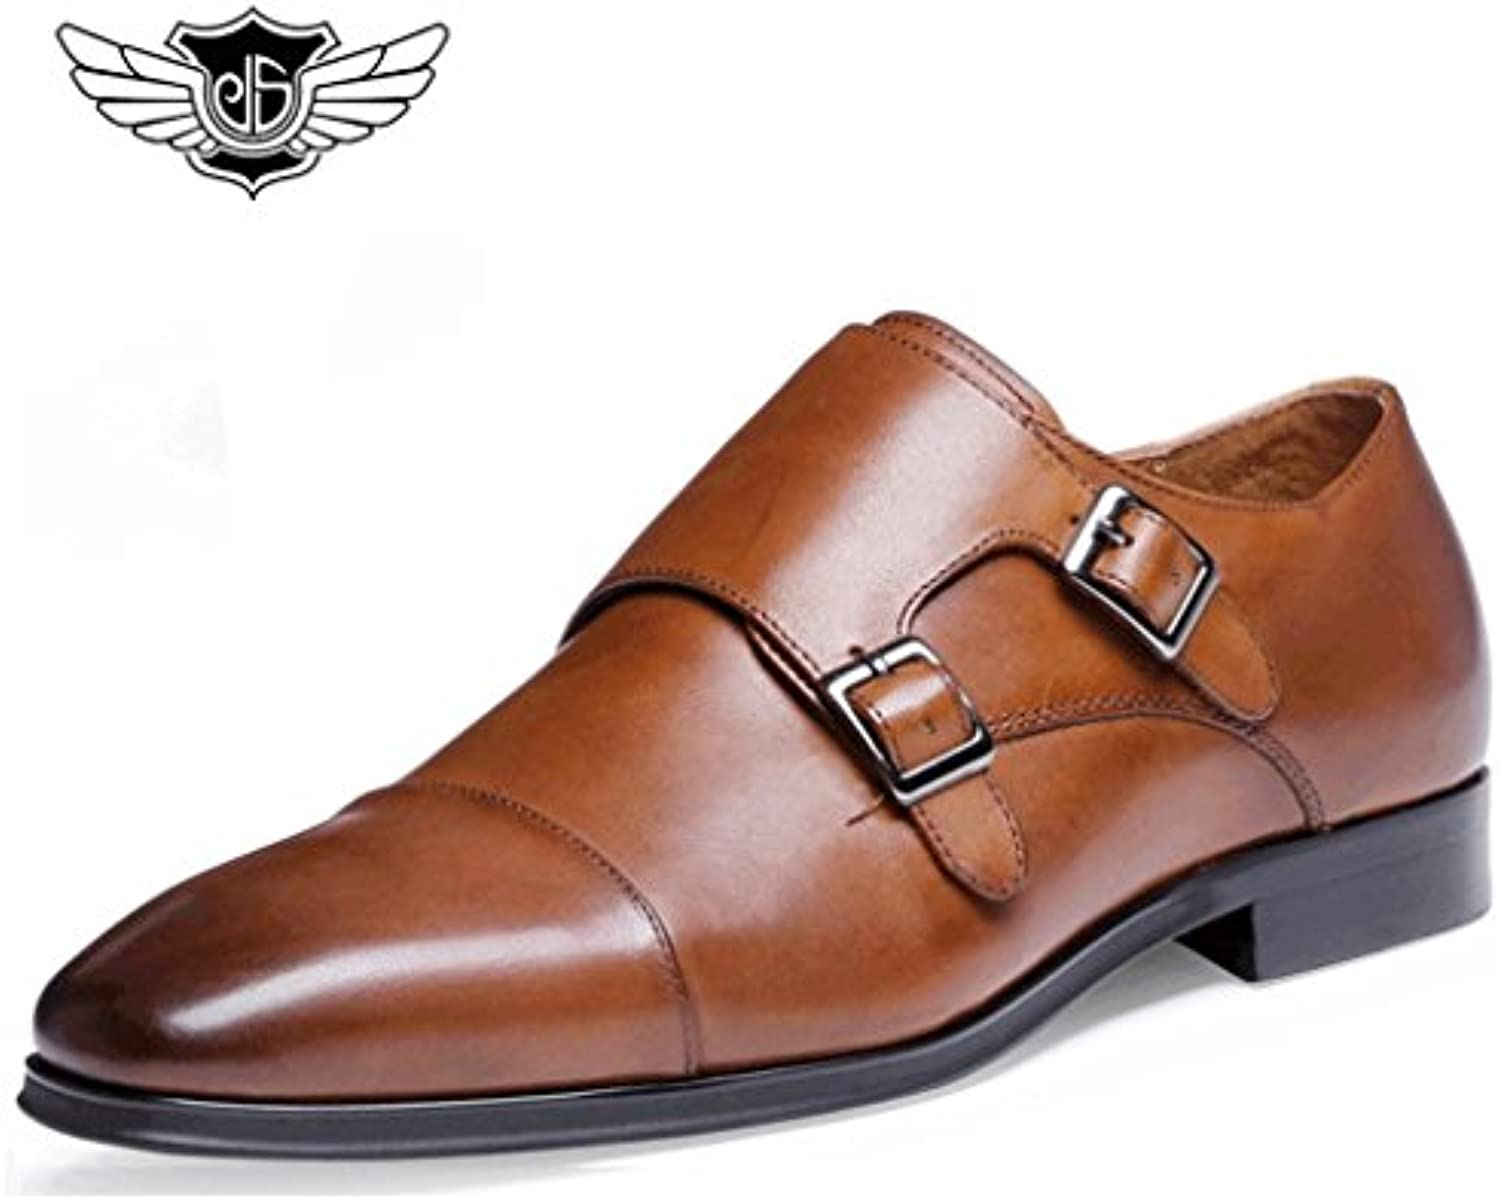 Desai Mens Formal Double Buckle Real Leather Monk Strap pointed toe shoes-Blcak